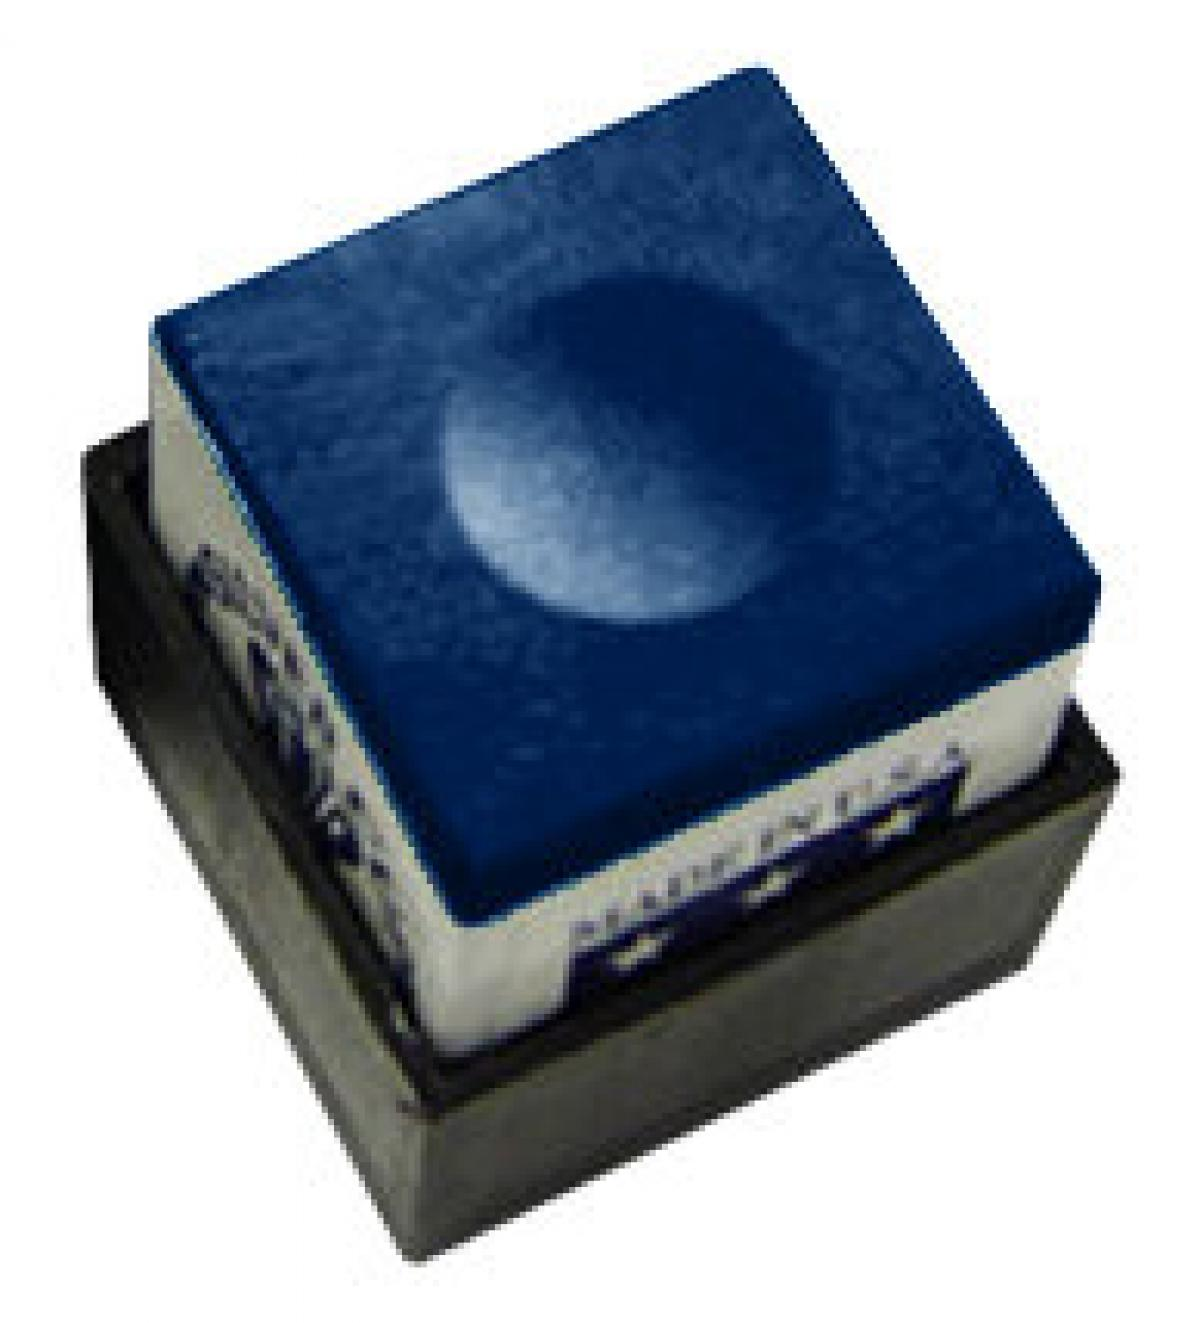 Silver Cup Chalk (navy blue, single cube)